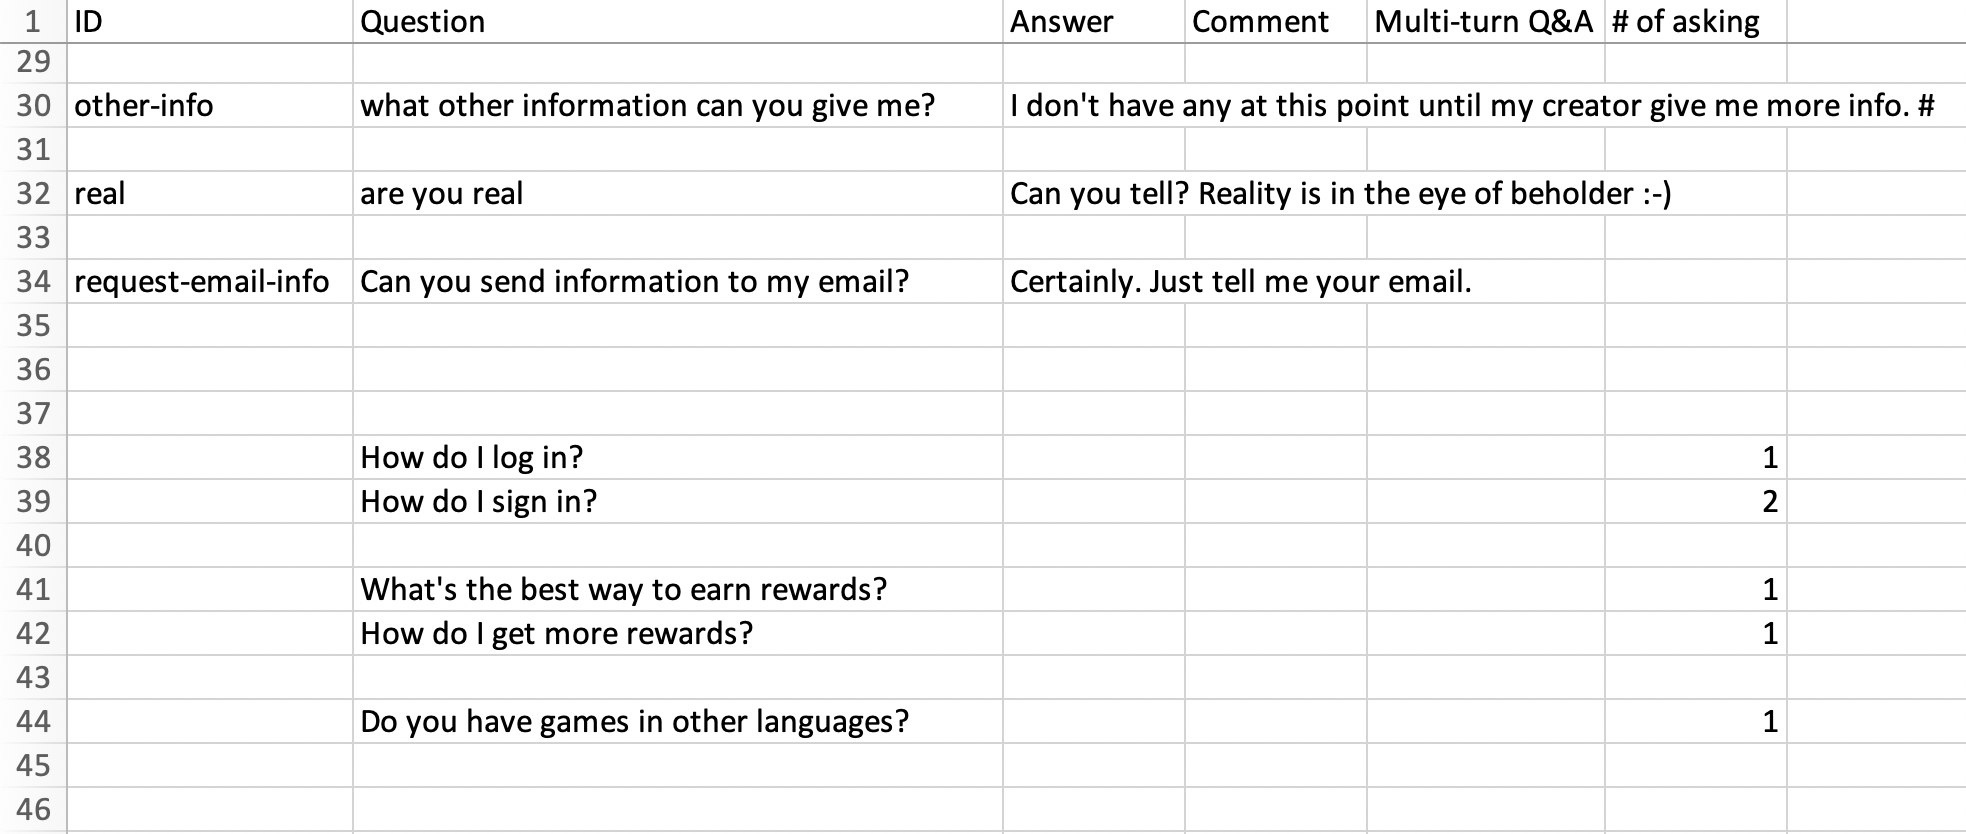 Downloaded Q&A CSV groups related unanswered questions together with stats on how many times each question has been asked